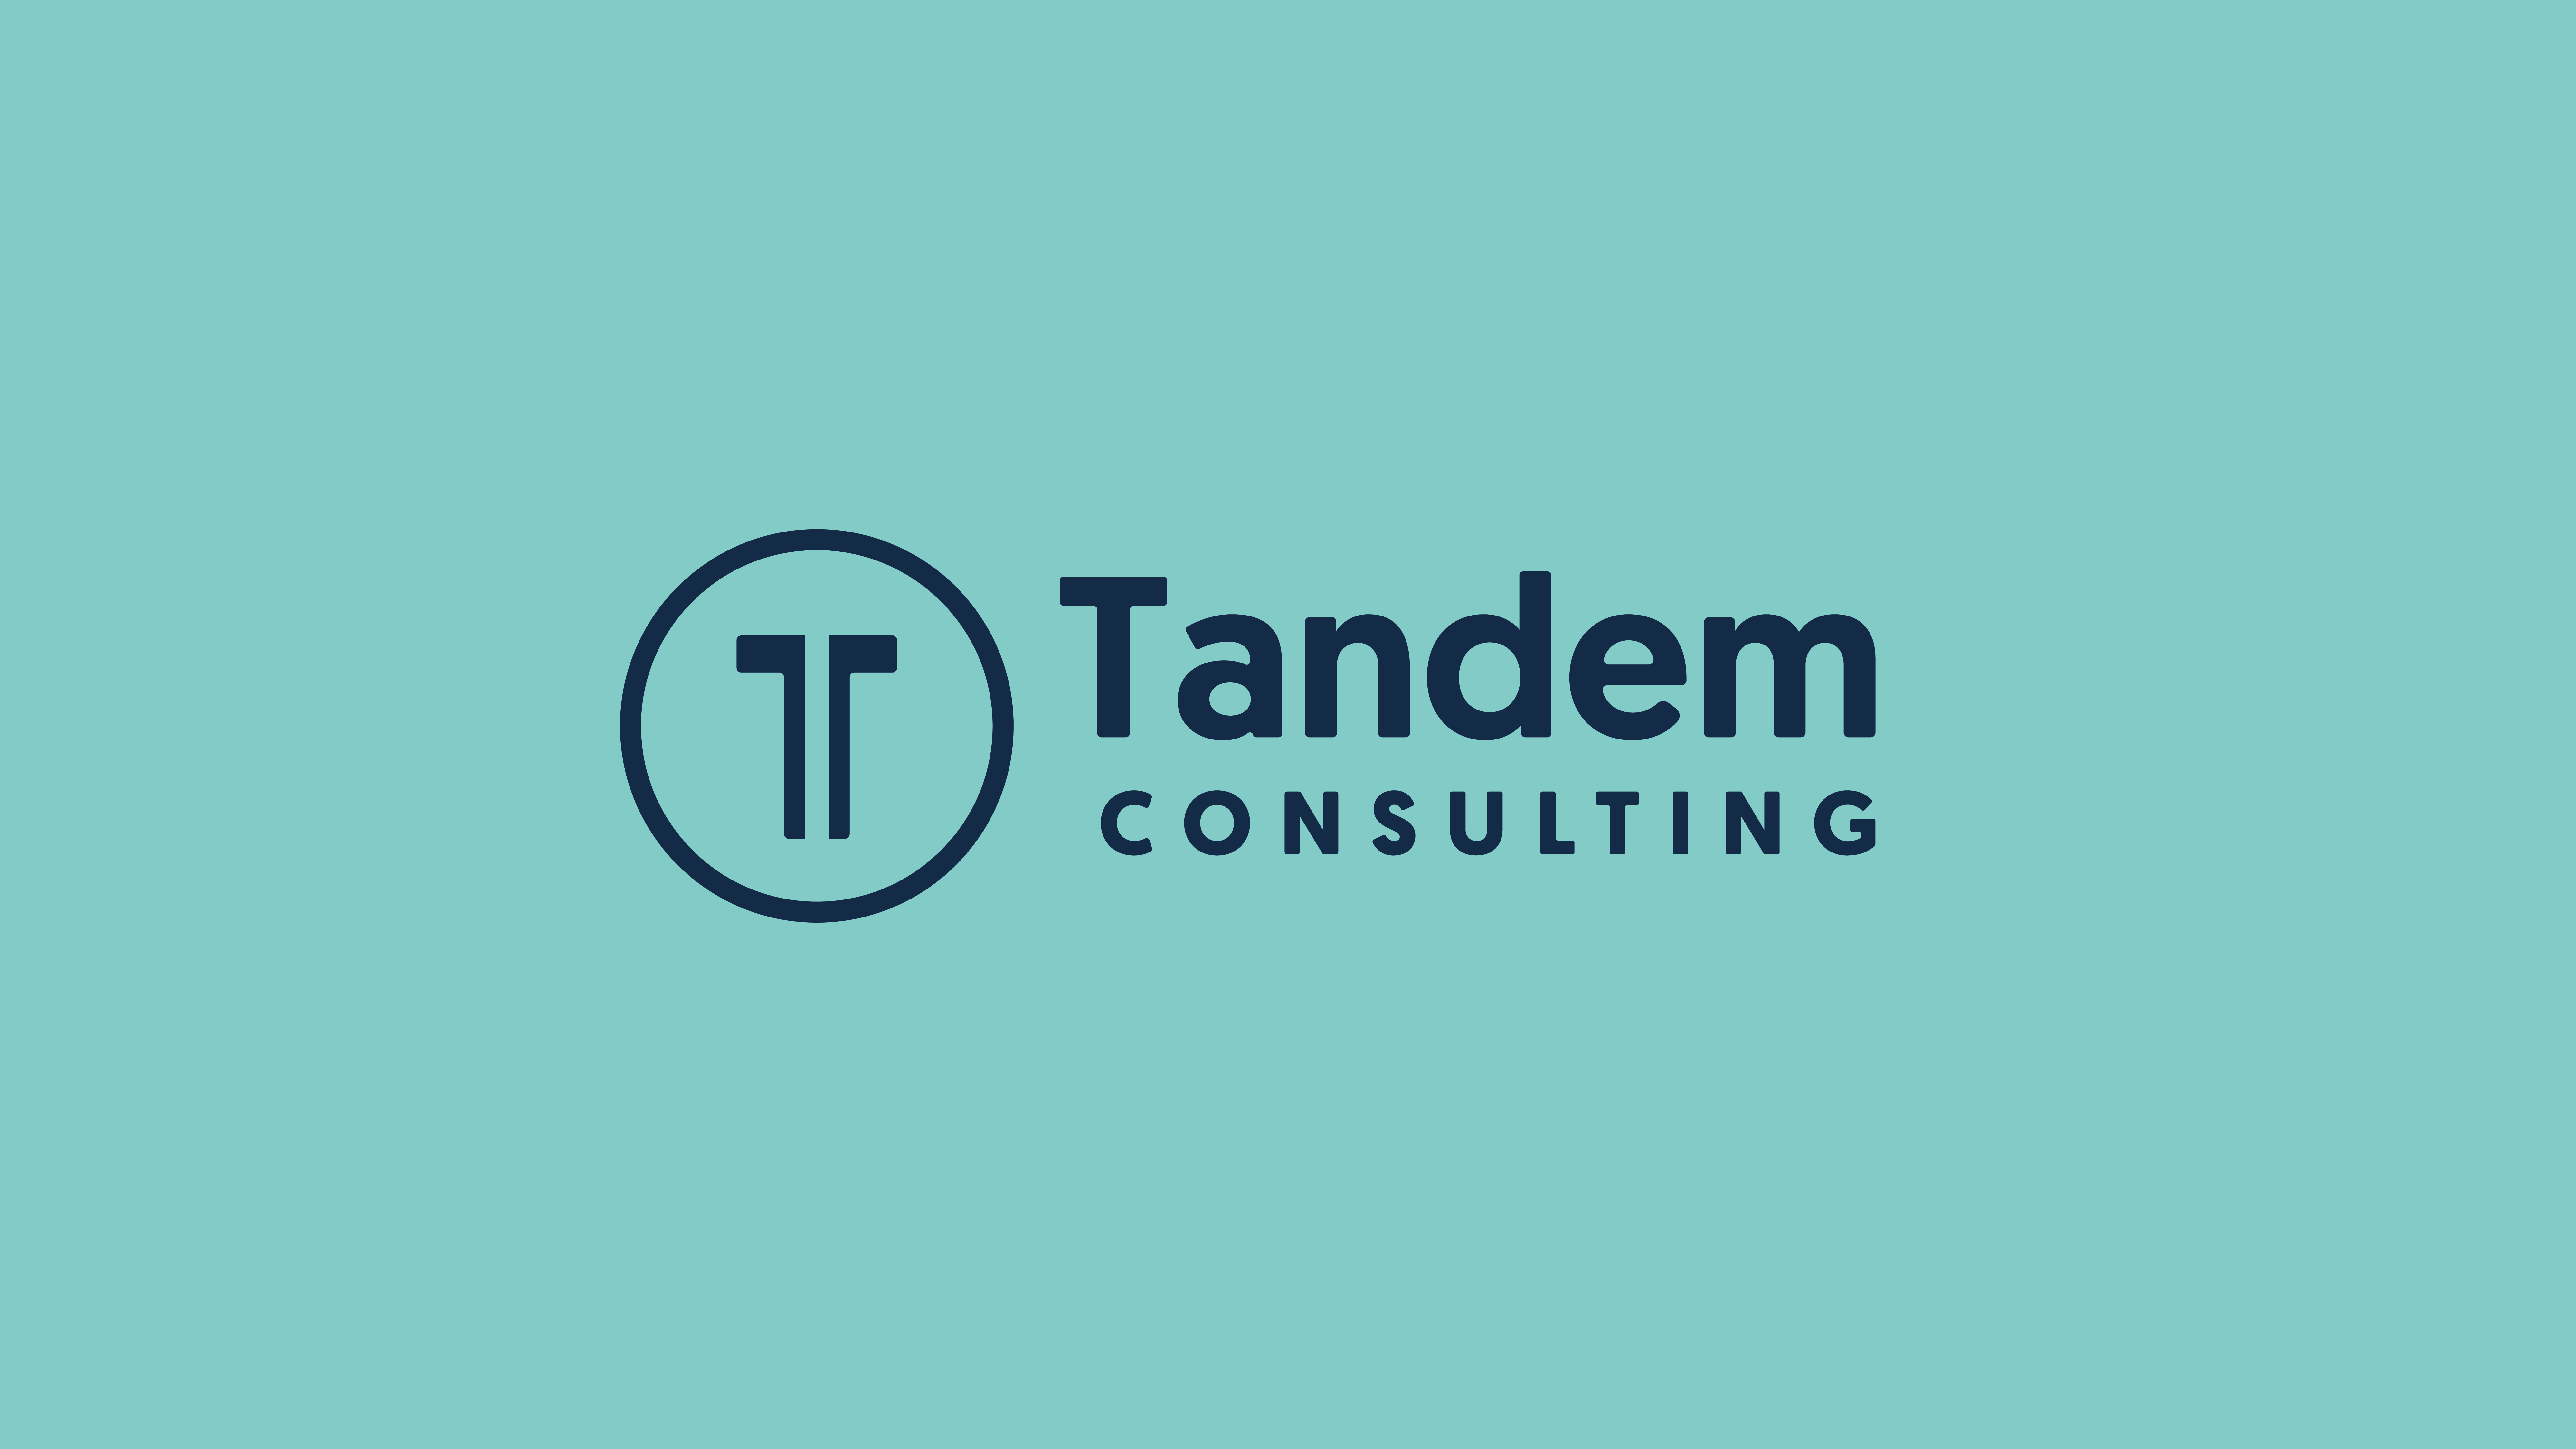 Tandem Consulting Logo. Blue against teal. The Tandem brand logo is the letter T split in half with a circle around it. This signifies that Tandem works with you but helps you to be independent.